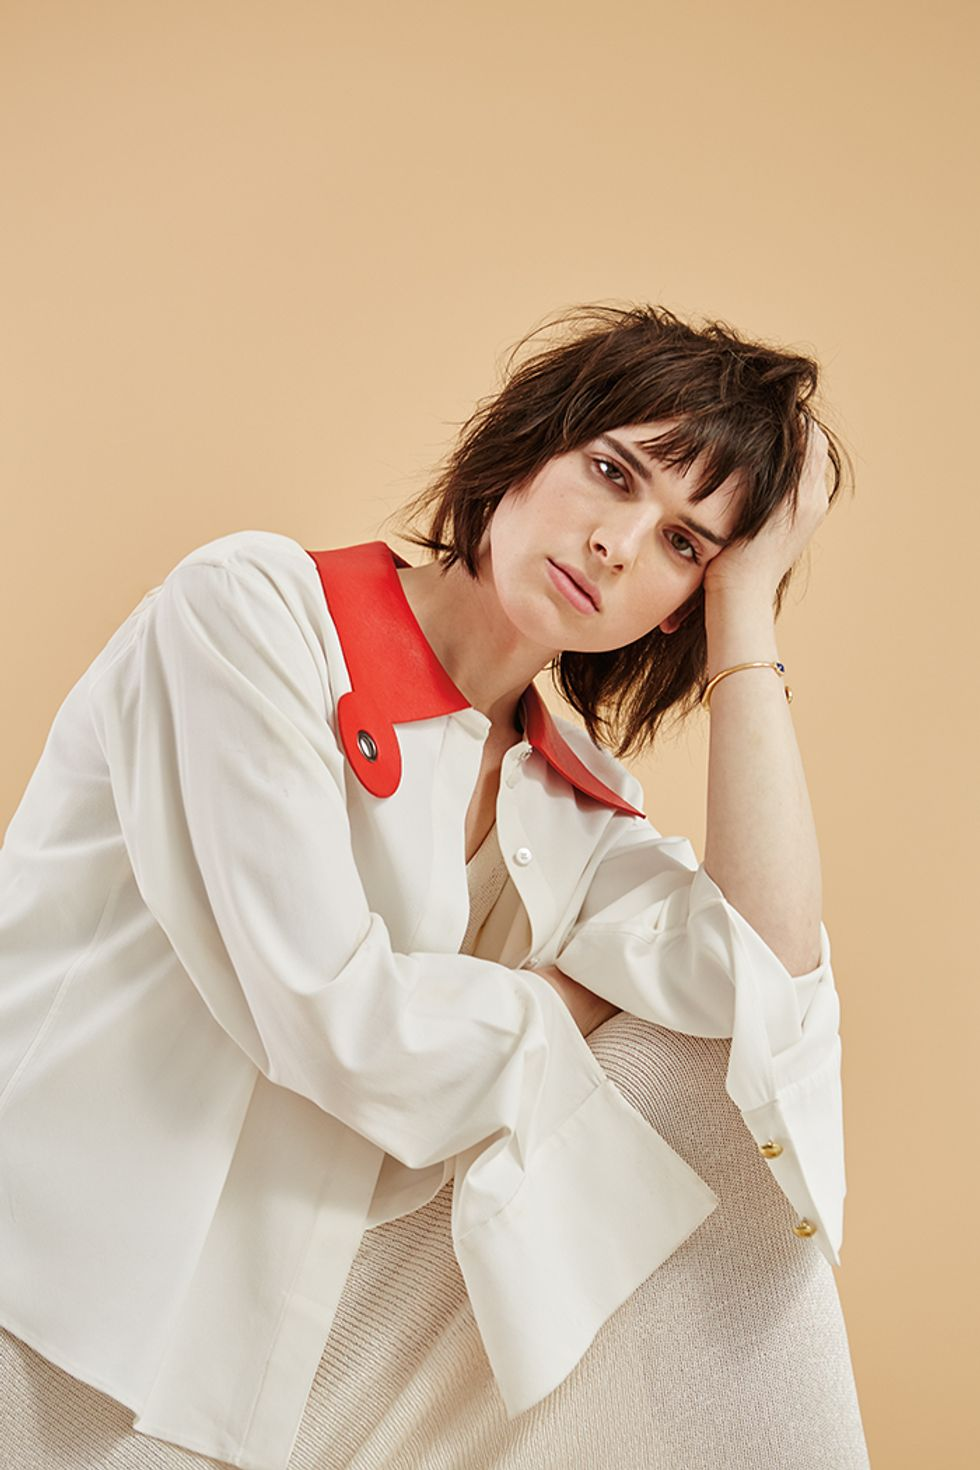 Trans Model Hari Nef Signs to IMG